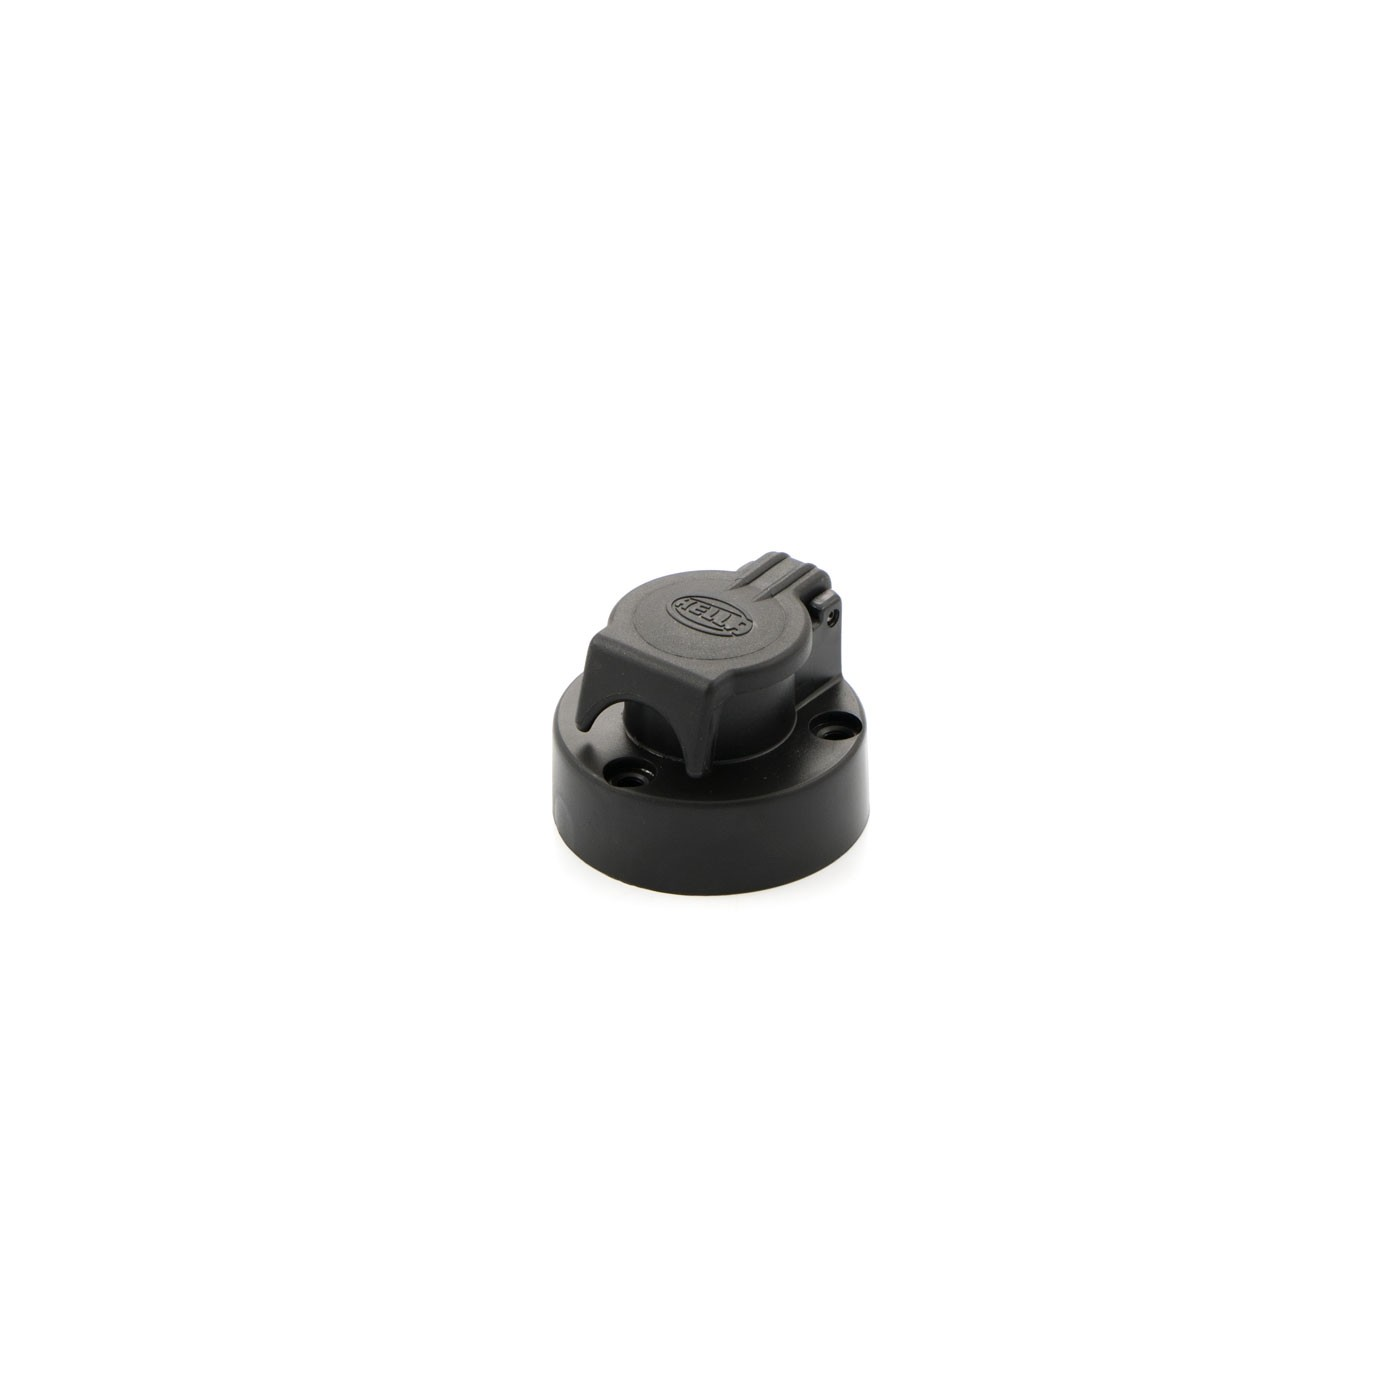 8JB 001 933-031 HELLA Socket black 3 pin